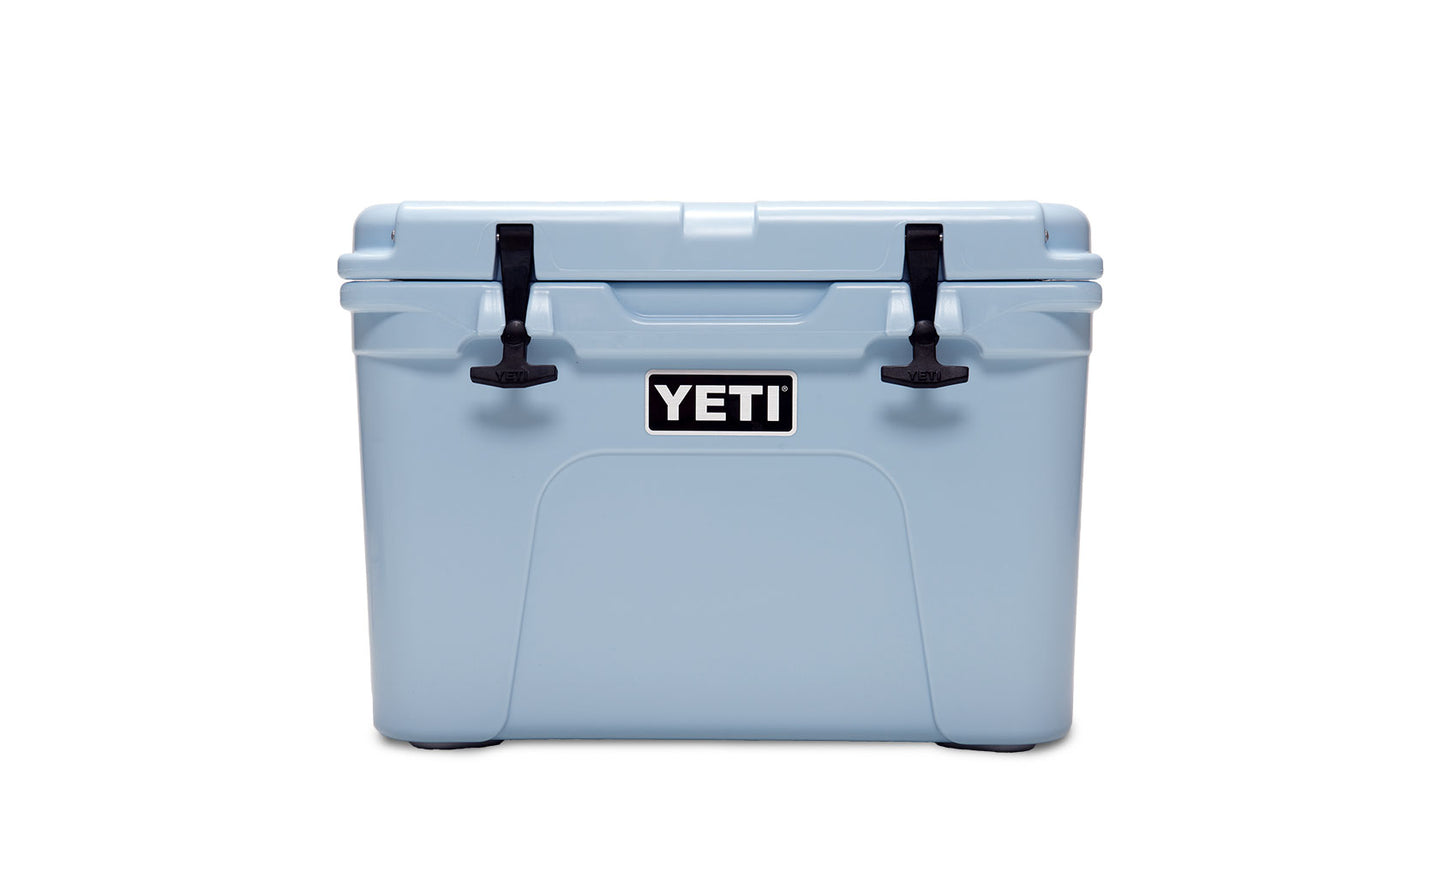 YETI Tundra 35 Cooler - Ice Blue